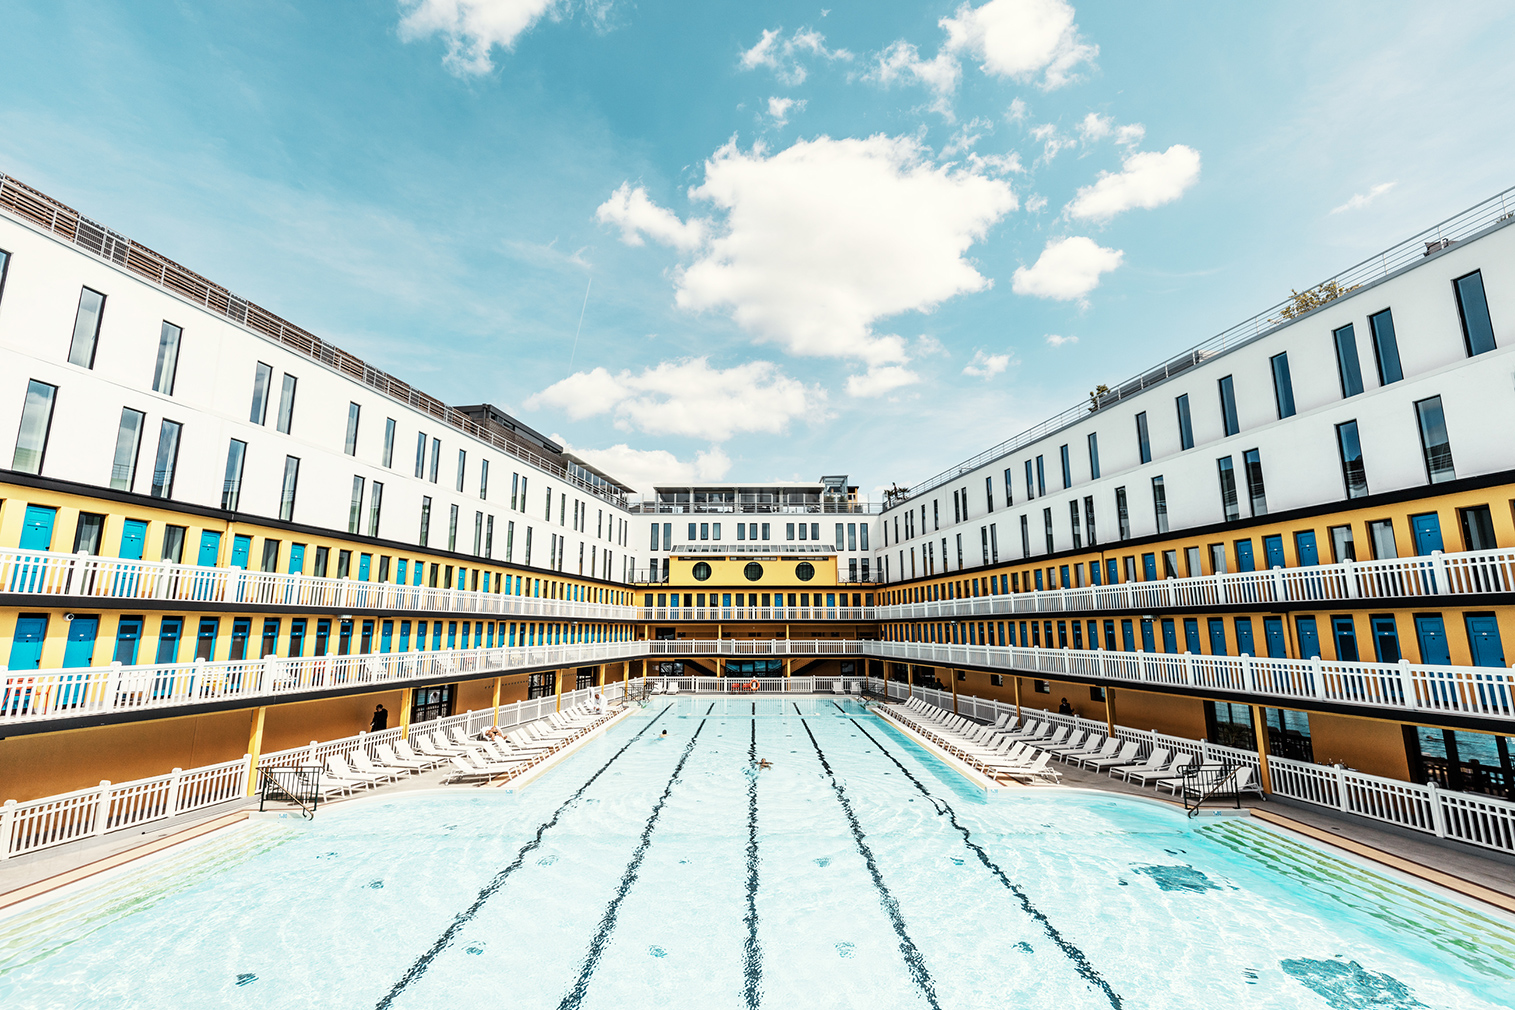 Paris swimming pools photo essay by Ludwig Favre